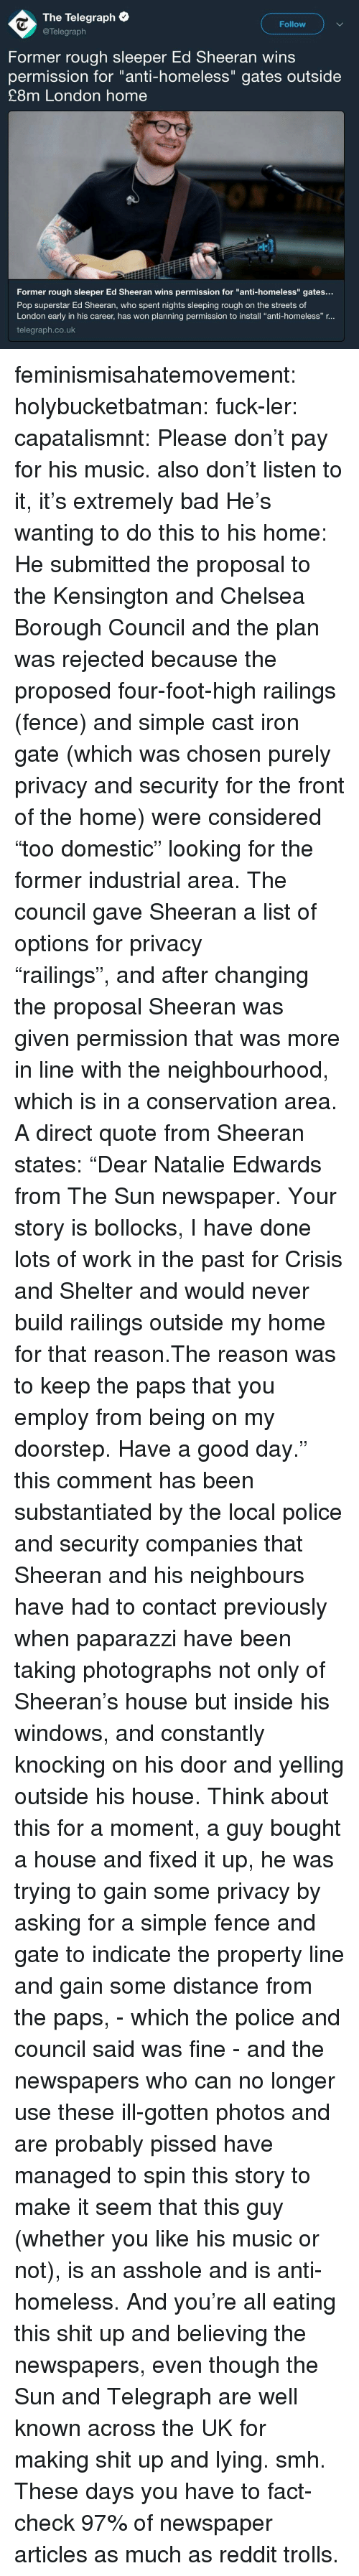 "Bad, Chelsea, and Homeless: The Telegraph  @Telegraph  Follow  Former rough sleeper Ed Sheeran wins  permission for ""anti-homeless"" gates outside  £8m London home  Former rough sleeper Ed Sheeran wins permission for ""anti-homeless"" gates..  Pop superstar Ed Sheeran, who spent nights sleeping rough on the streets of  London early in his career, has won planning permission to install ""anti-homeless"" r...  telegraph.co.uk feminismisahatemovement:  holybucketbatman:  fuck-ler:  capatalismnt: Please don't pay for his music.  also don't listen to it, it's extremely bad  He's wanting to do this to his home:  He submitted the proposal to the Kensington and Chelsea Borough Council and the plan was rejected because the proposed four-foot-high railings (fence) and simple cast iron gate (which was chosen purely privacy and security for the front of the home) were considered ""too domestic"" looking for the former industrial area. The council gave Sheeran a list of options for privacy ""railings"", and after changing the proposal Sheeran was given permission that was more in line with the neighbourhood, which is in a conservation area.  A direct quote from Sheeran states: ""Dear Natalie Edwards from The Sun newspaper. Your story is bollocks, I have done lots of work in the past for Crisis and Shelter and would never build railings outside my home for that reason.The reason was to keep the paps that you employ from being on my doorstep. Have a good day."" this comment has been substantiated by the local police and security companies that Sheeran and his neighbours have had to contact previously when paparazzi have been taking photographs not only of Sheeran's house but inside his windows, and constantly knocking on his door and yelling outside his house. Think about this for a moment, a guy bought a house and fixed it up, he was trying to gain some privacy by asking for a simple fence and gate to indicate the property line and gain some distance from the paps, - which the police and council said was fine - and the newspapers who can no longer use these ill-gotten photos and are probably pissed have managed to spin this story to make it seem that this guy (whether you like his music or not), is an asshole and is anti-homeless. And you're all eating this shit up and believing the newspapers, even though the Sun and Telegraph are well known across the UK for making shit up and lying. smh.   These days you have to fact-check 97% of newspaper articles as much as reddit trolls."